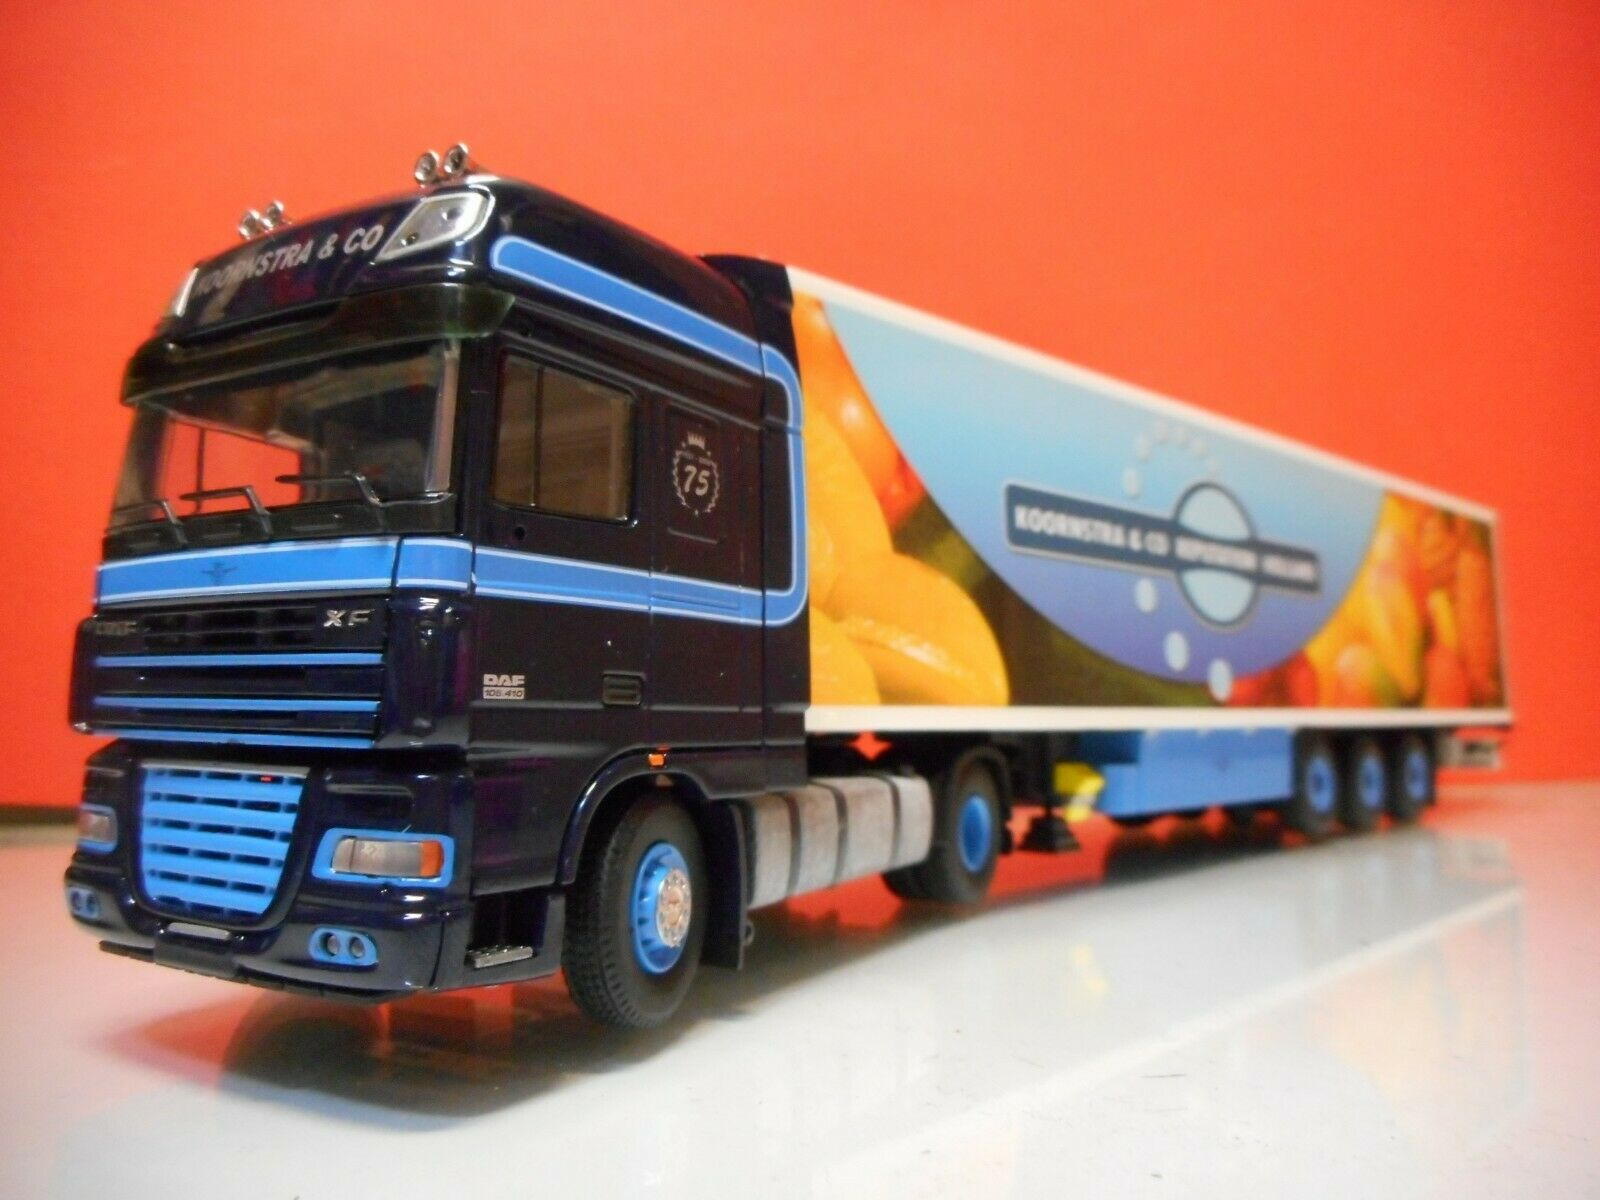 TEKNO 54230 DAF XF 105 SUPER SPACECAB WITH FRIDGE TRAILER KOORNSTRA